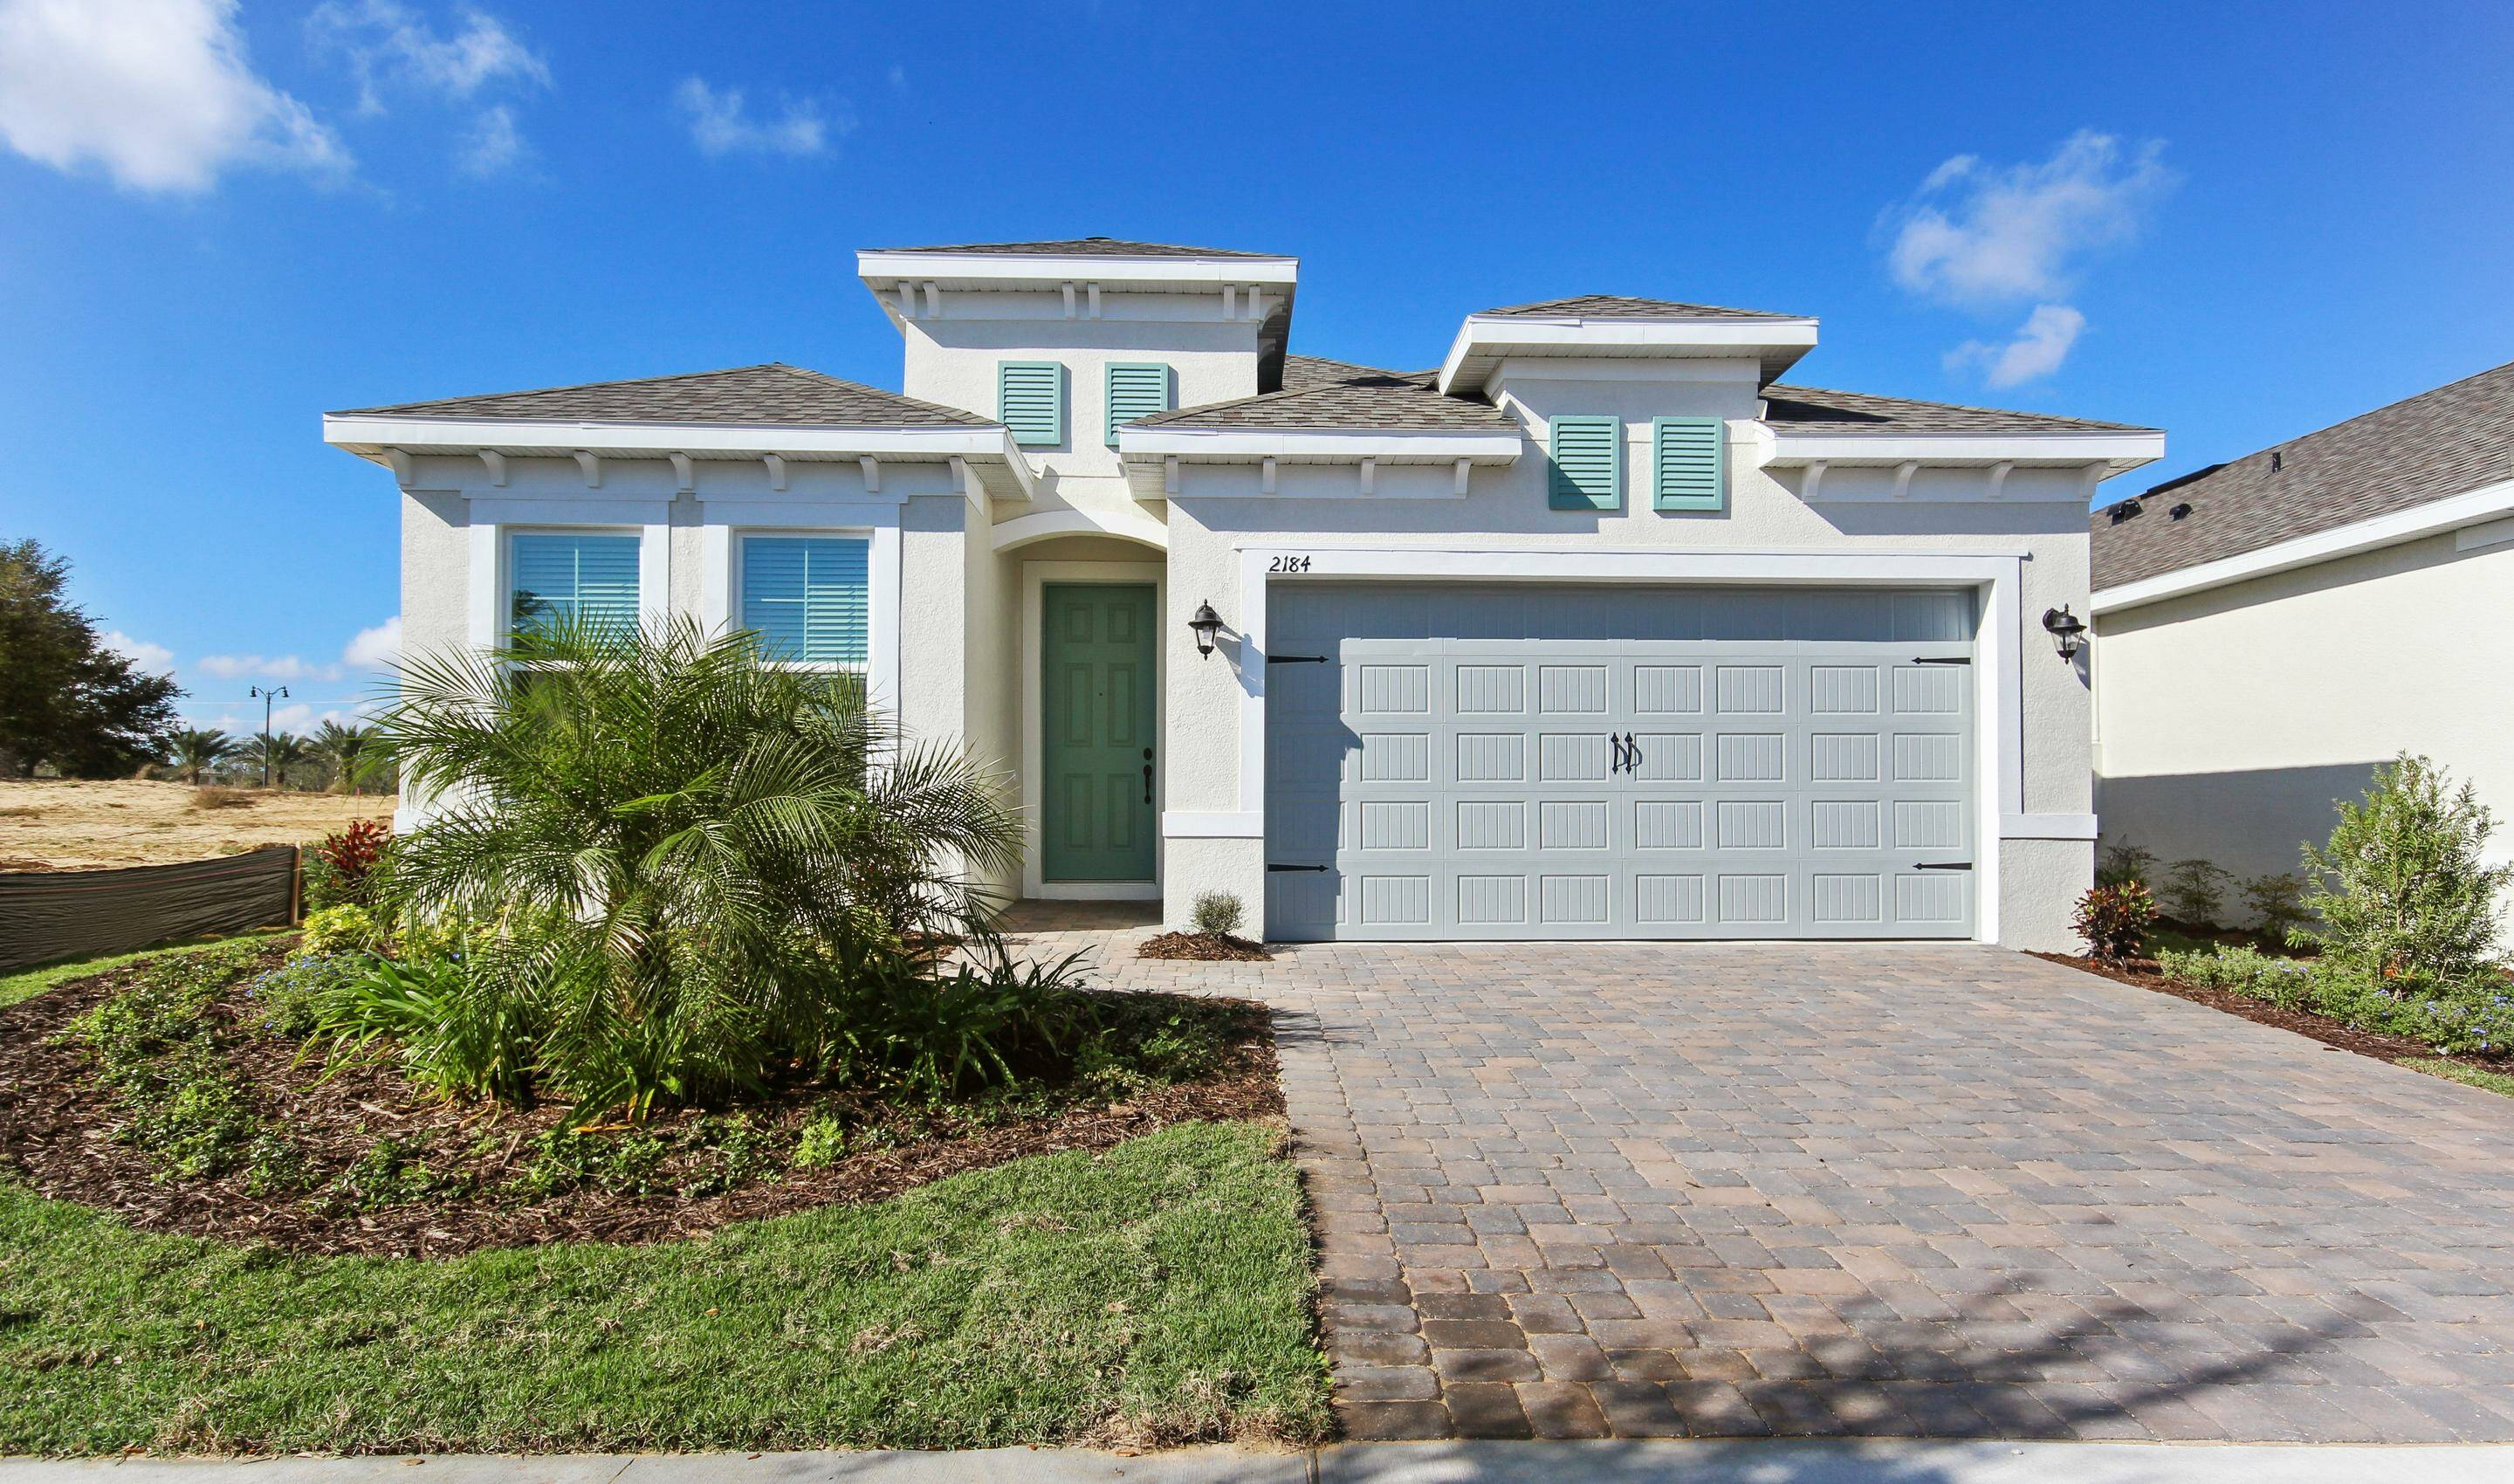 siding front dunmore B in four seasons at orlando new homes in orlando florida